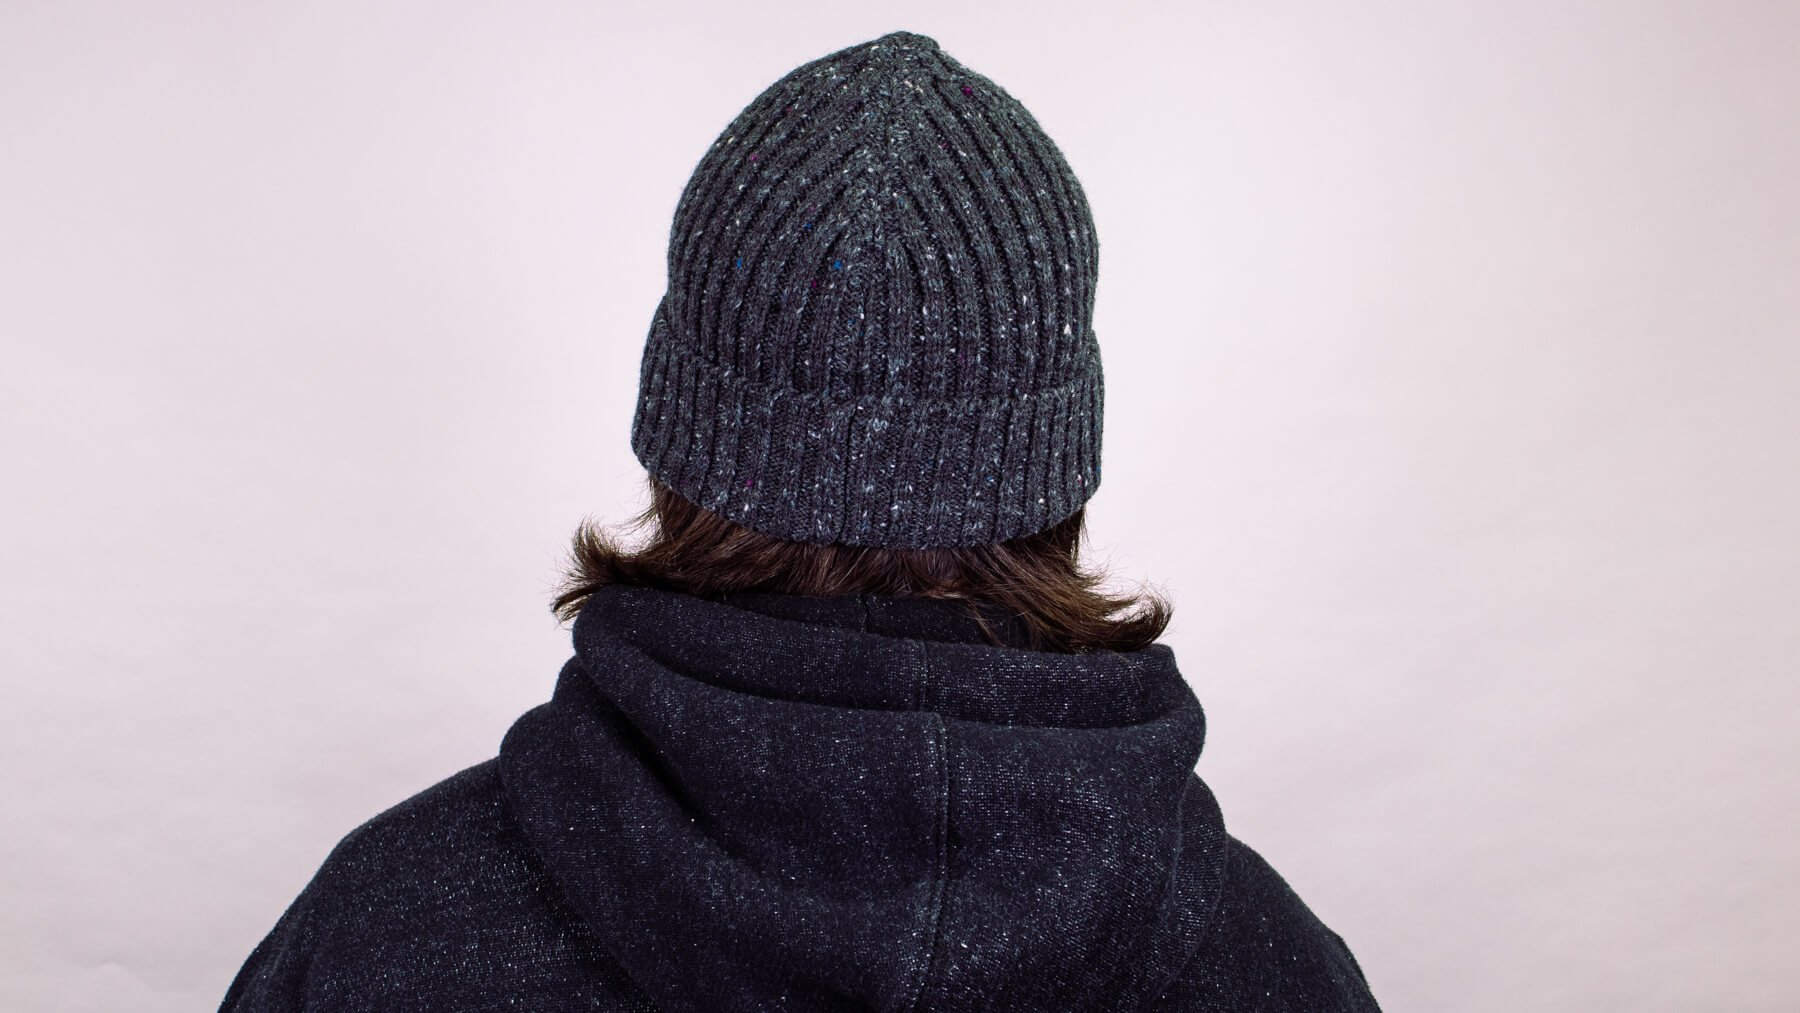 Beanie with awkward stage hairstyle back view